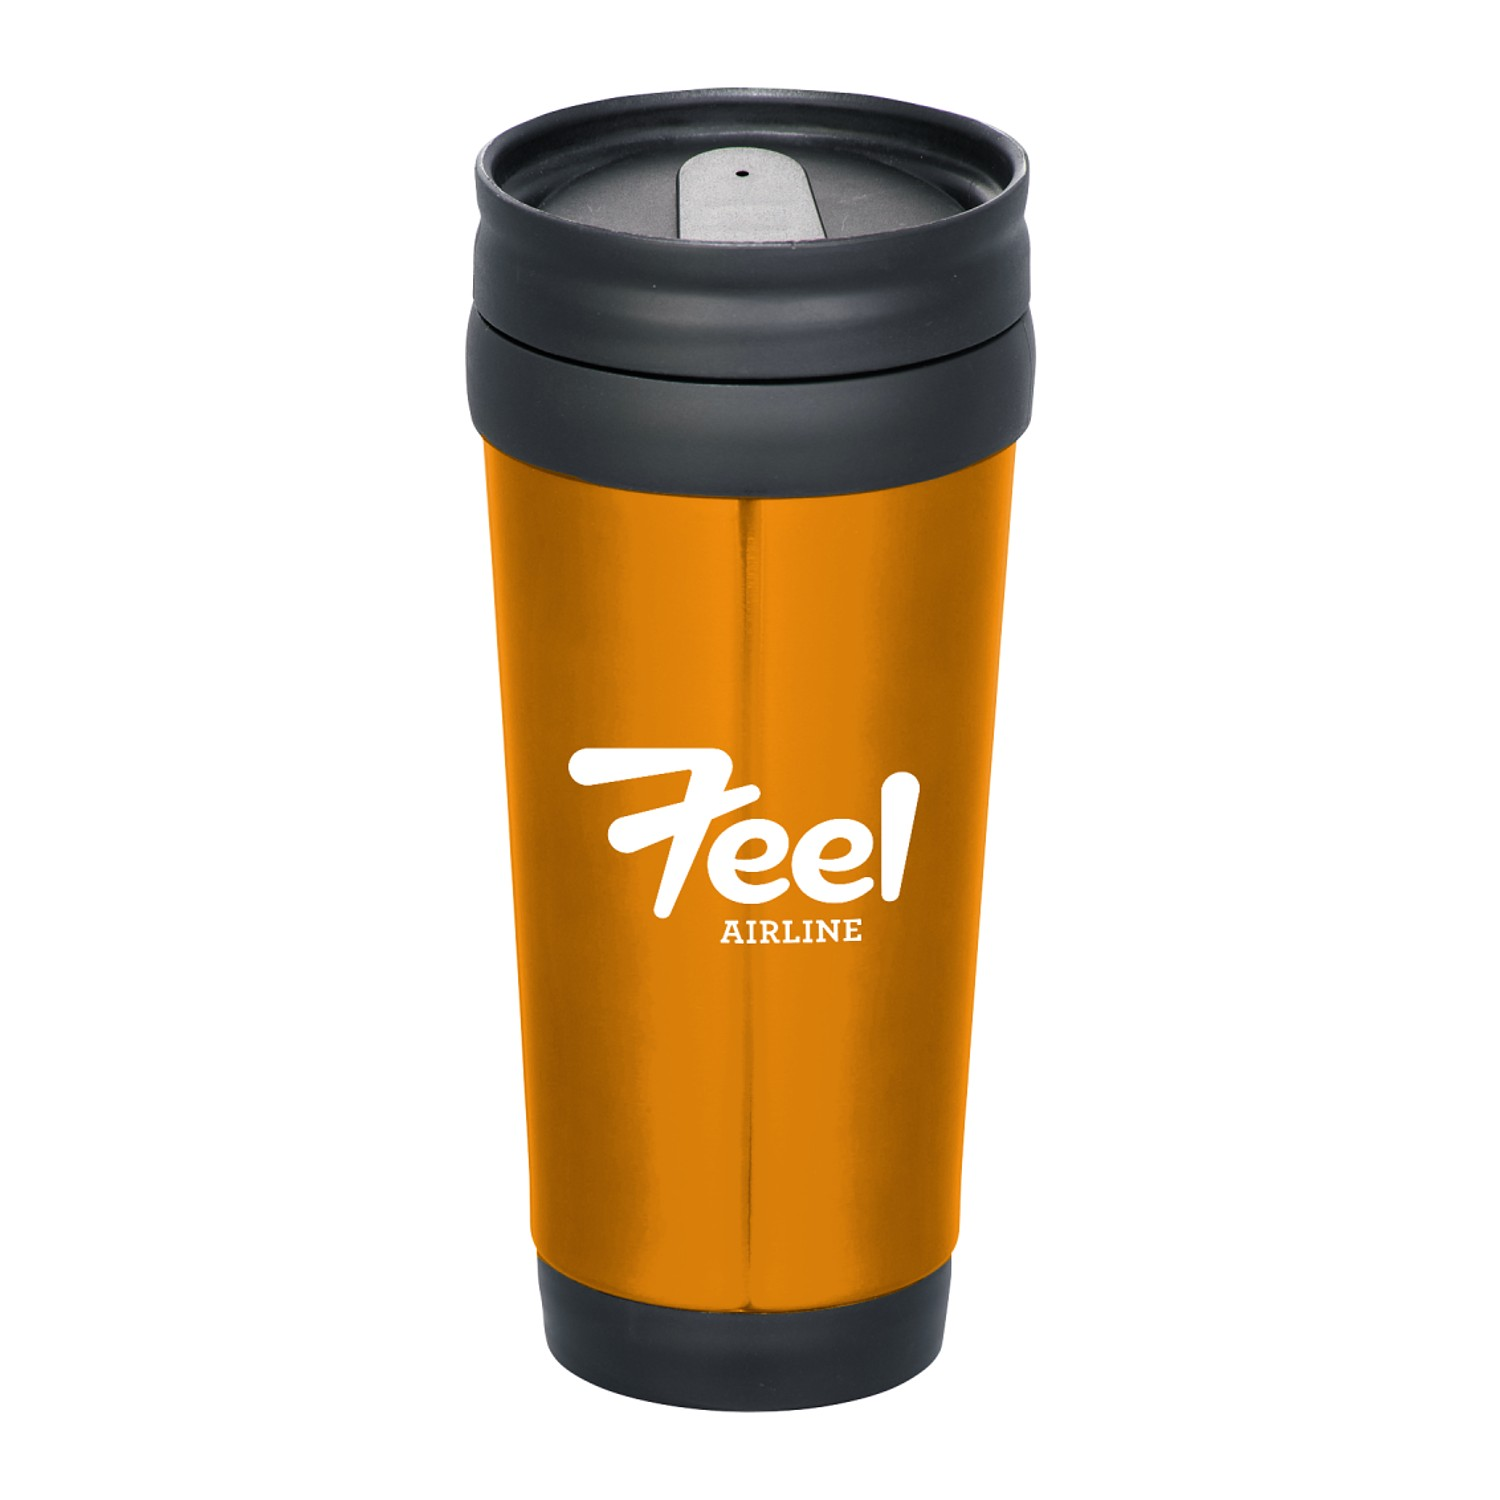 Redondo 14-oz. Travel Tumbler, SM-6675 - 1 Colour Imprint